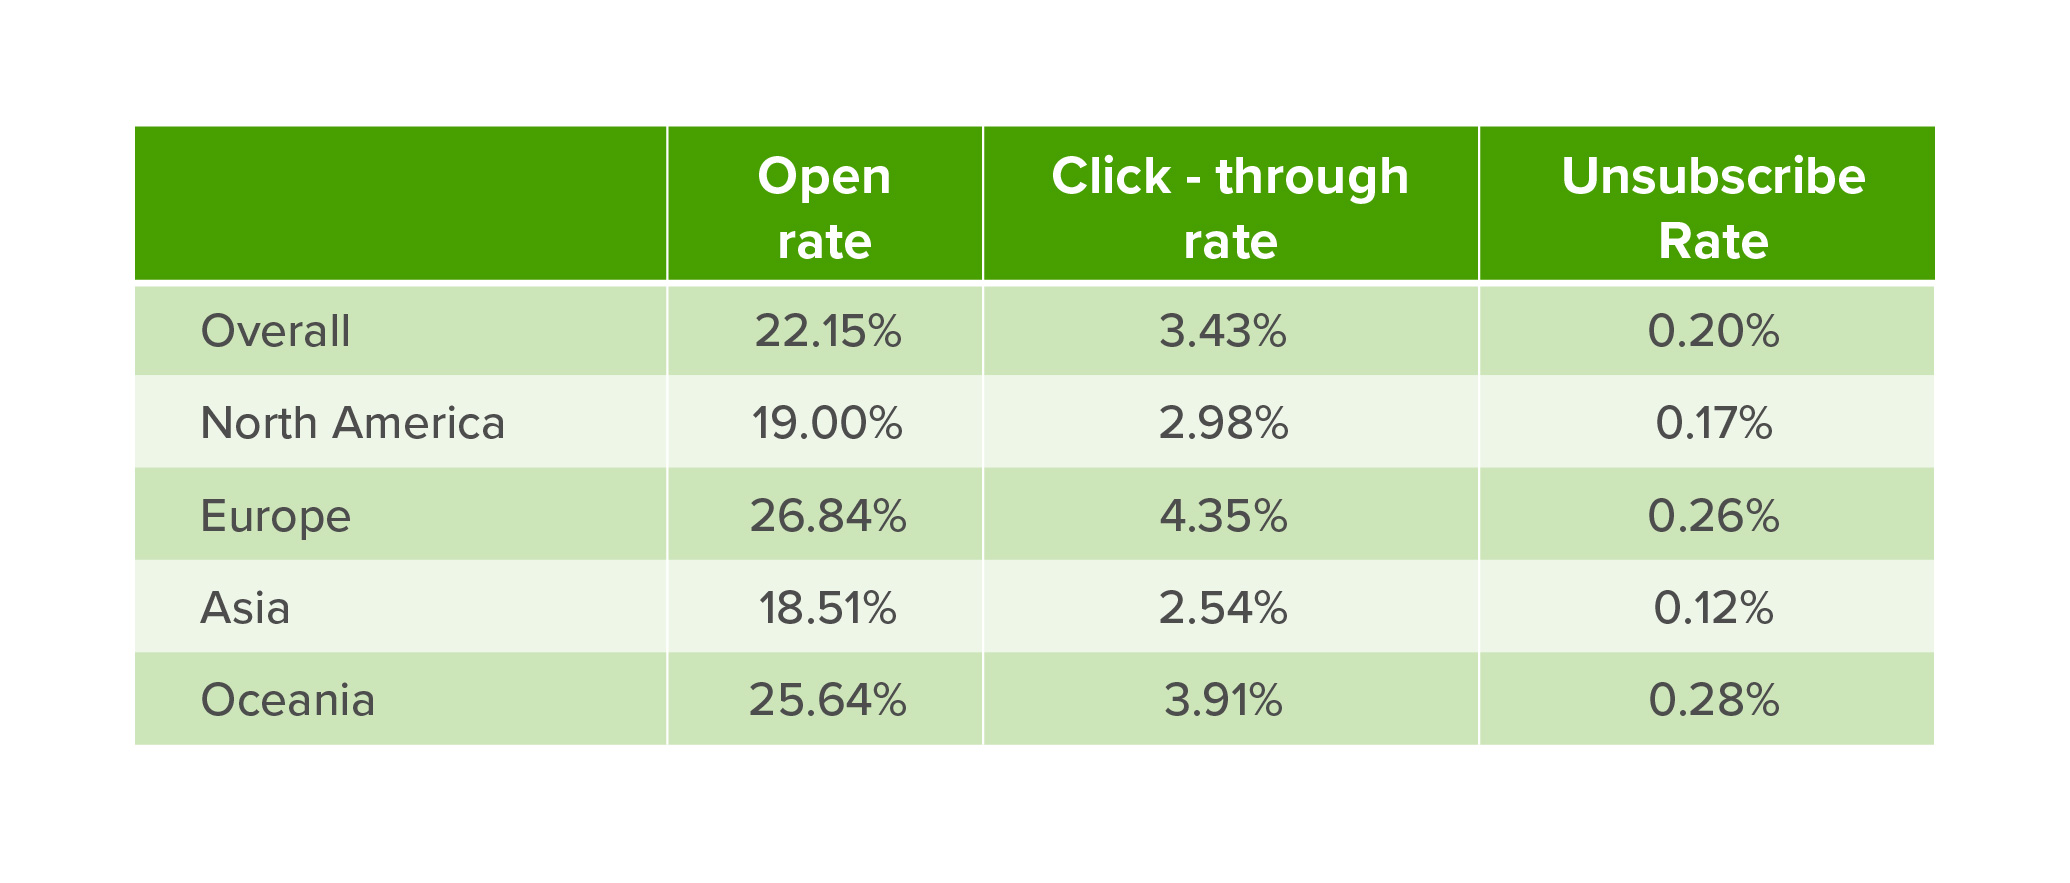 Email marketing open rates for North America, Asia and Europe